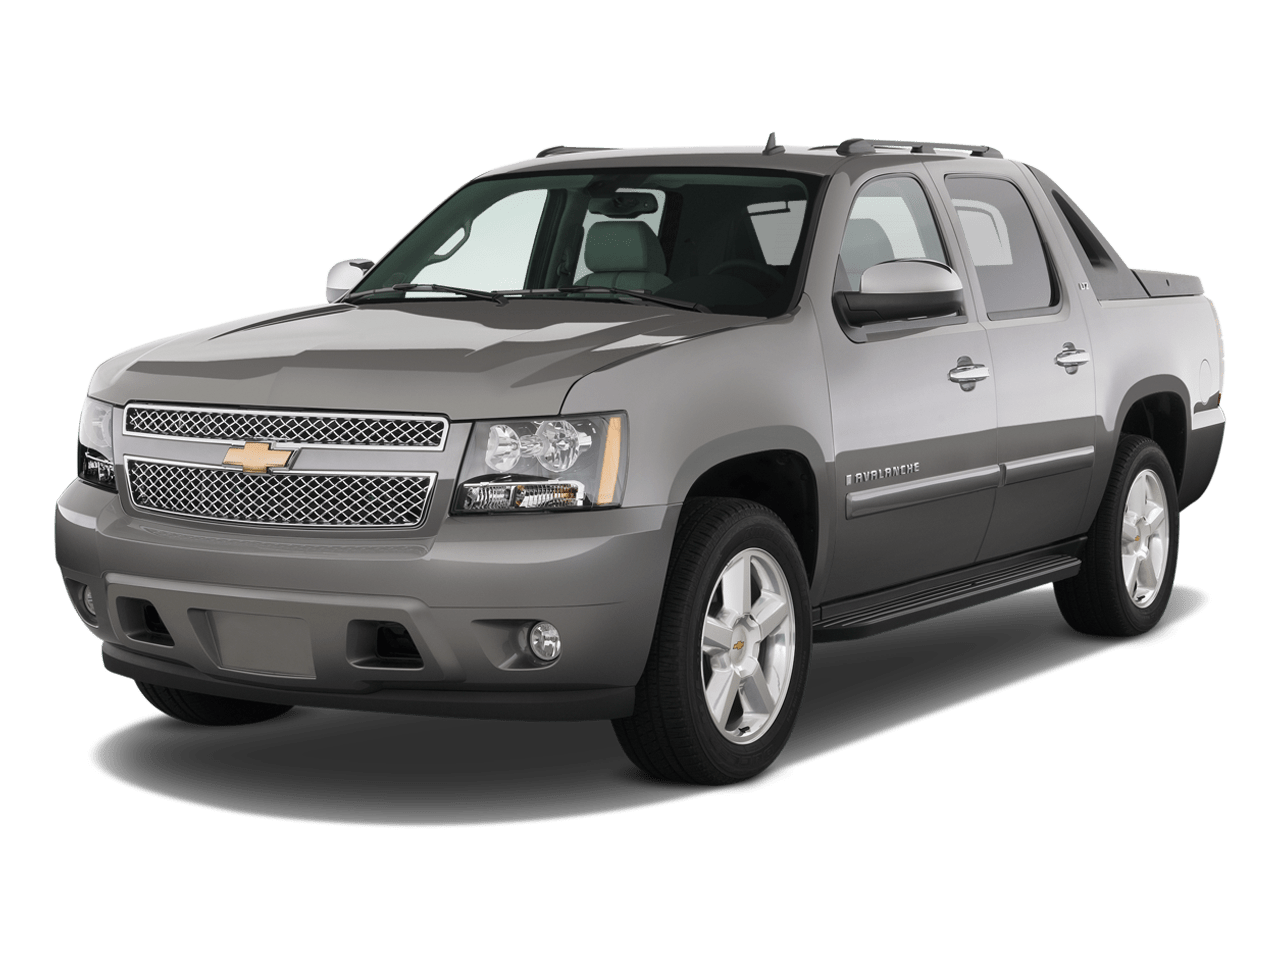 hight resolution of wiring schematic for 2009 chevrolet avalanche wiring diagrams data wig wag flasher diagram wig wag wiring diagram chevy avalanche